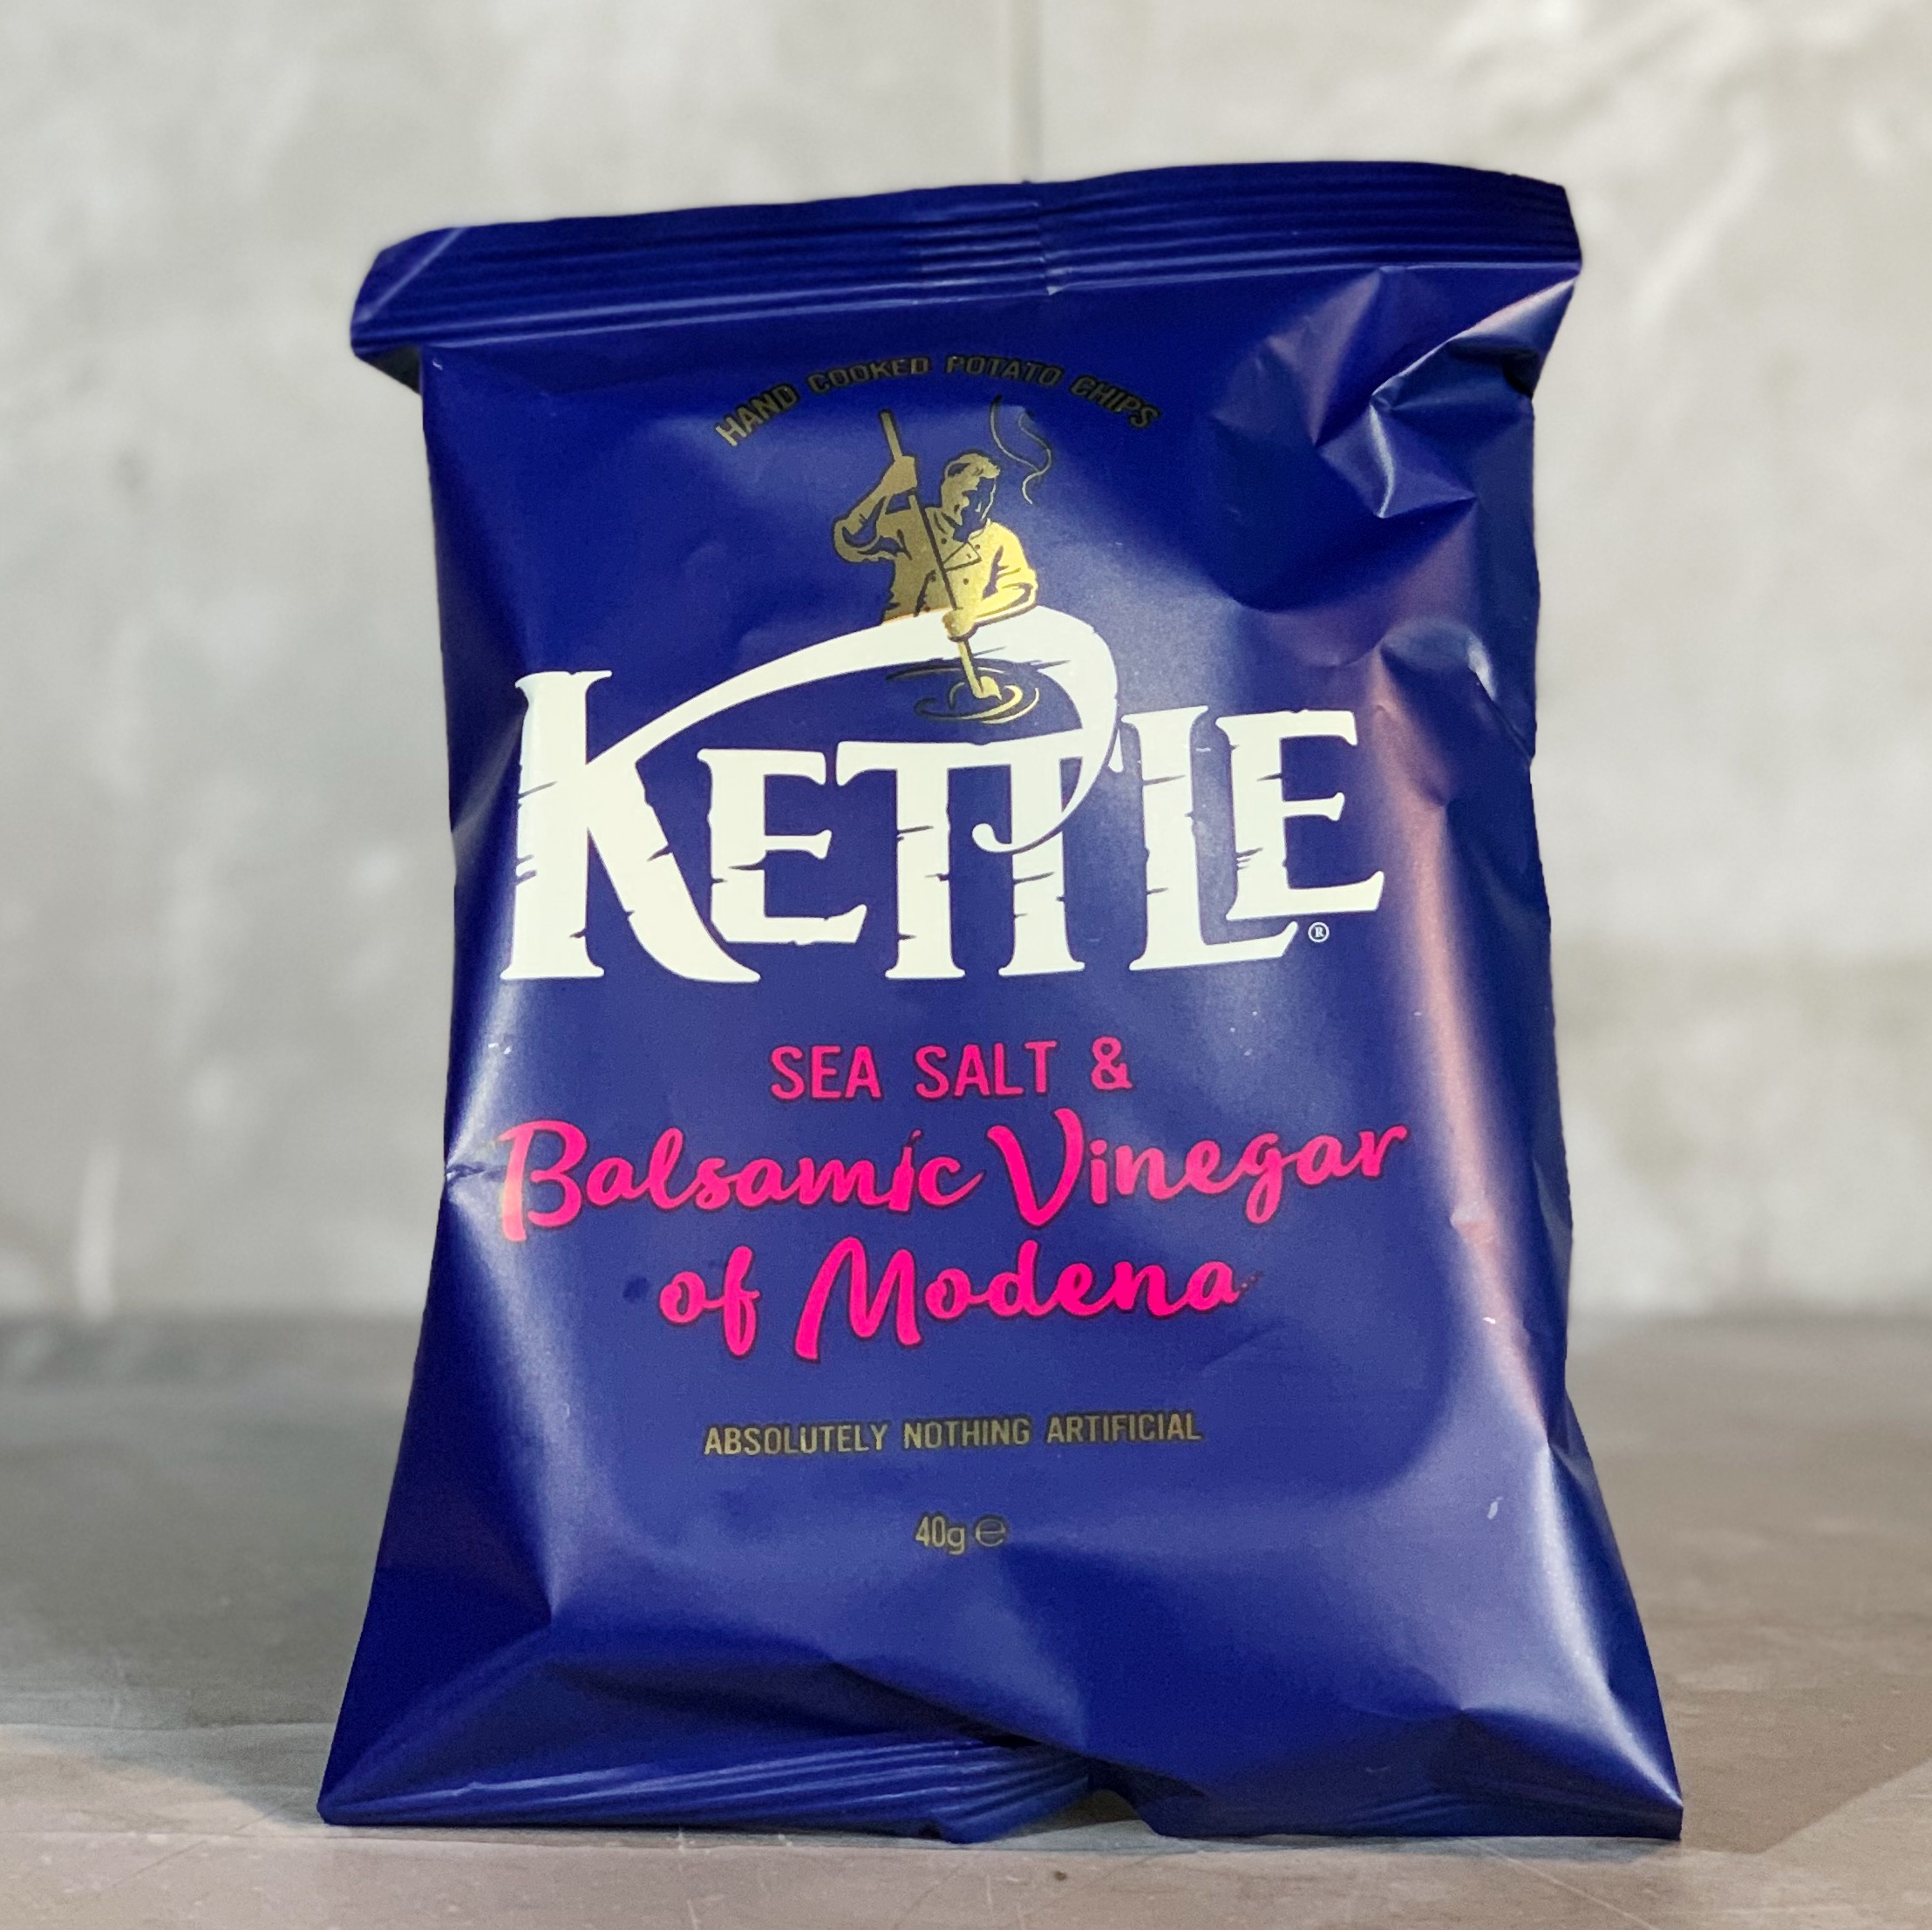 Kettle Crisp Sea Salt Balsamic Vinegar